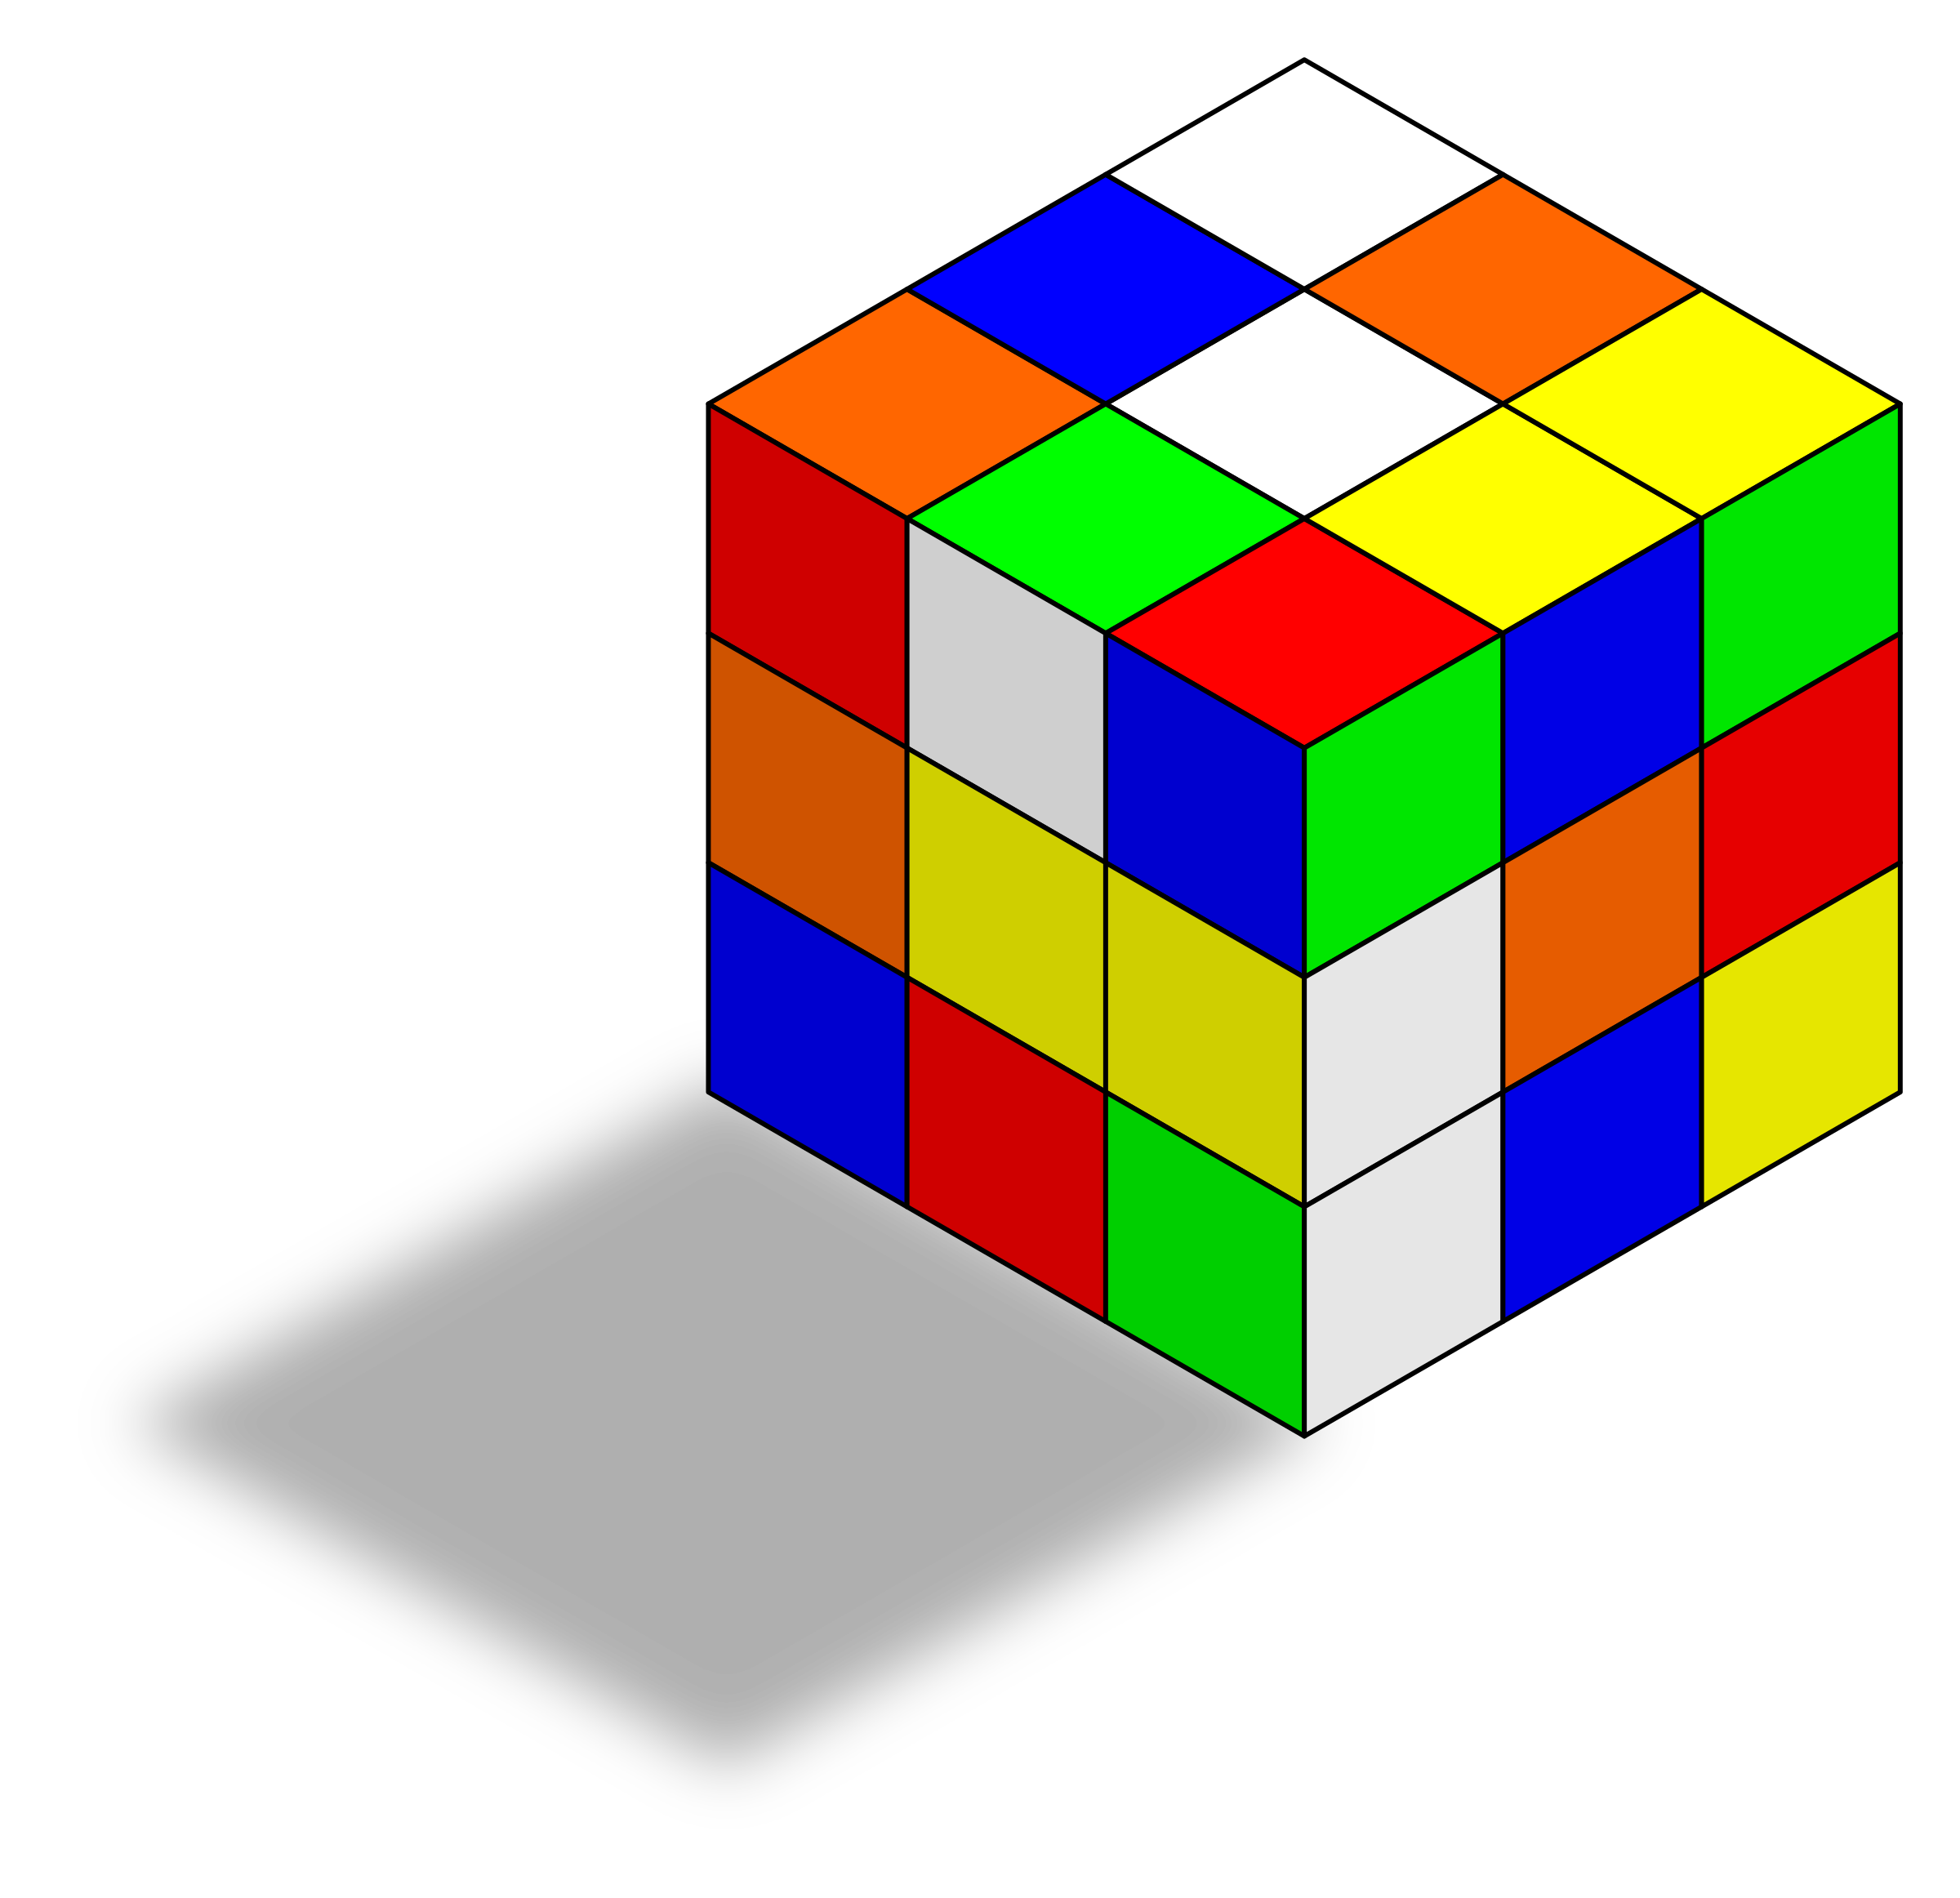 Rubiks cube by jimmyboy99